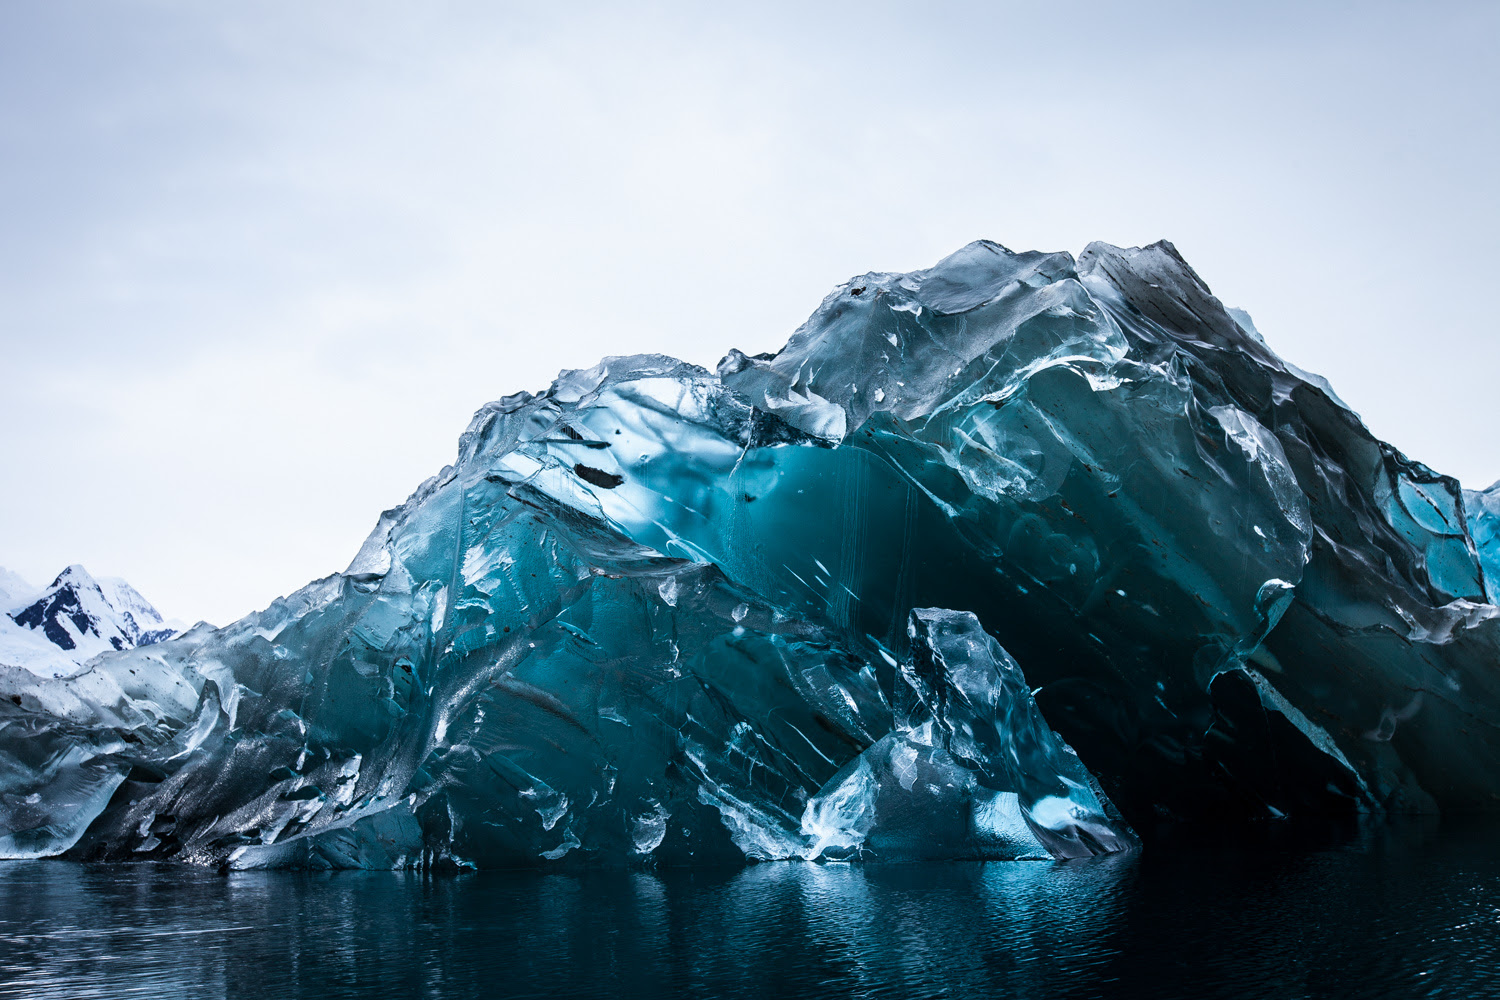 http://www.thisiscolossal.com/2015/01/a-rare-flipped-iceberg-in-antarctica-photographed-by-alex-cornell/